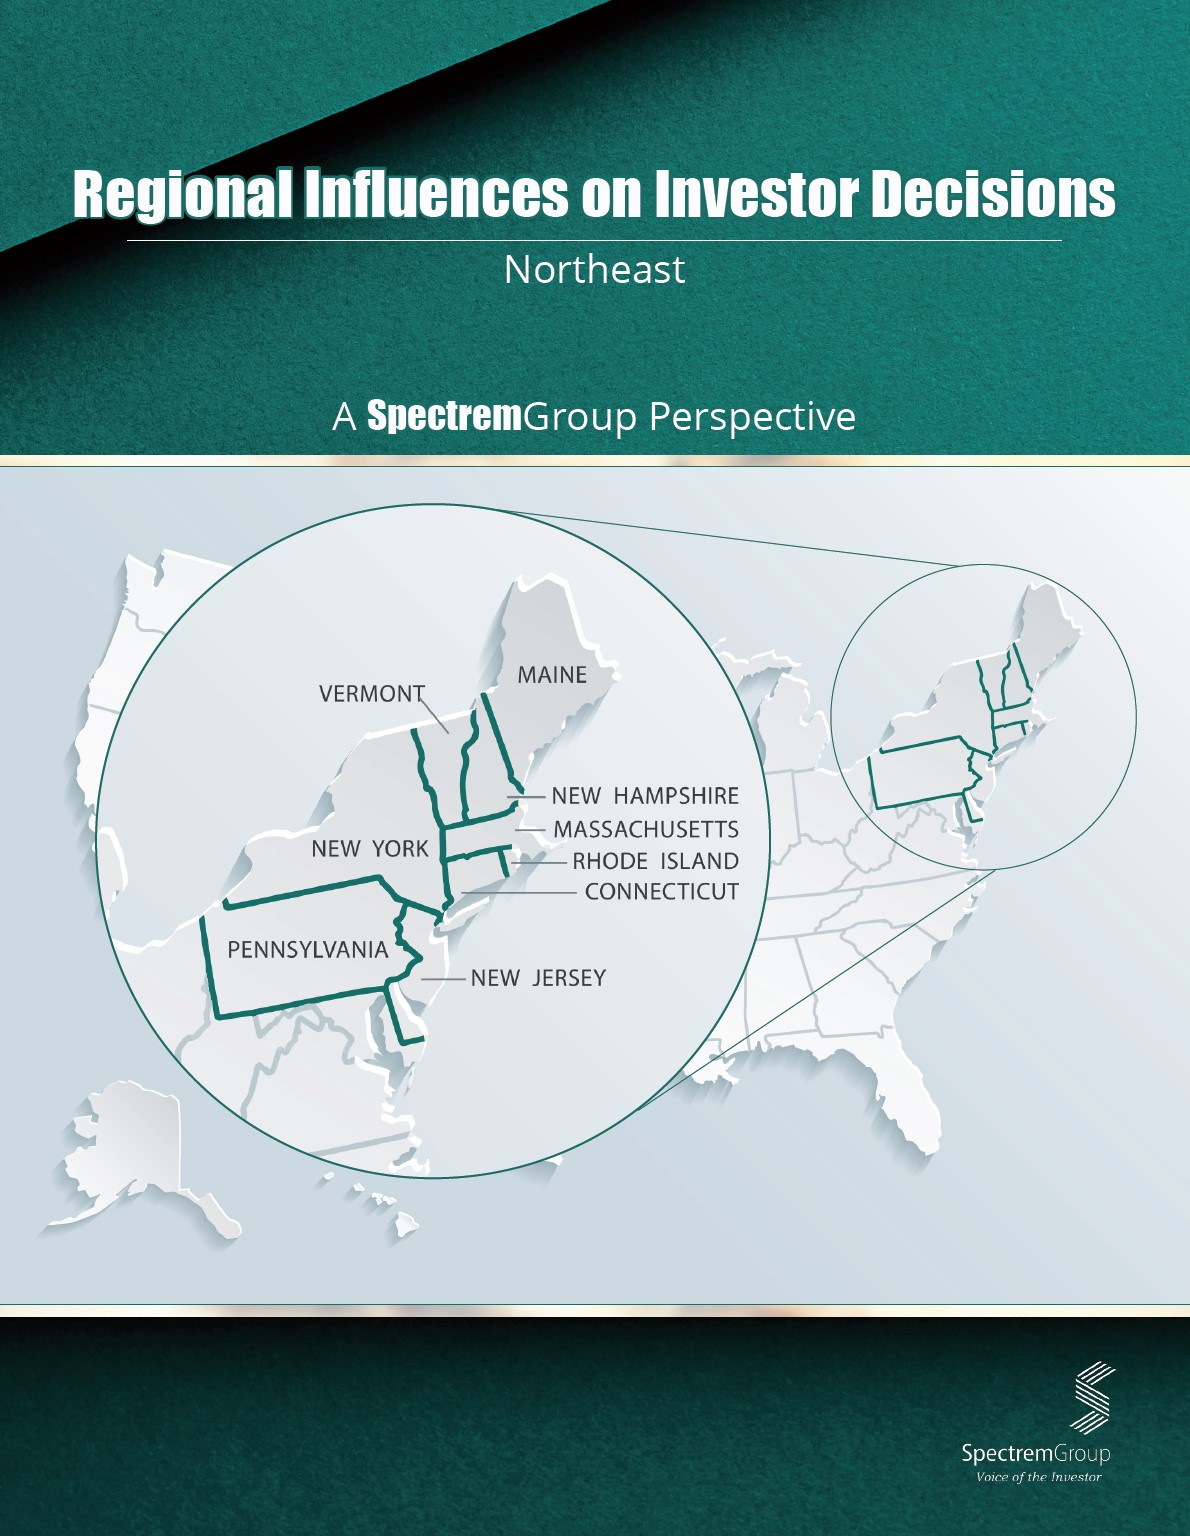 Regional Influences on Investor Decisions - Northeast